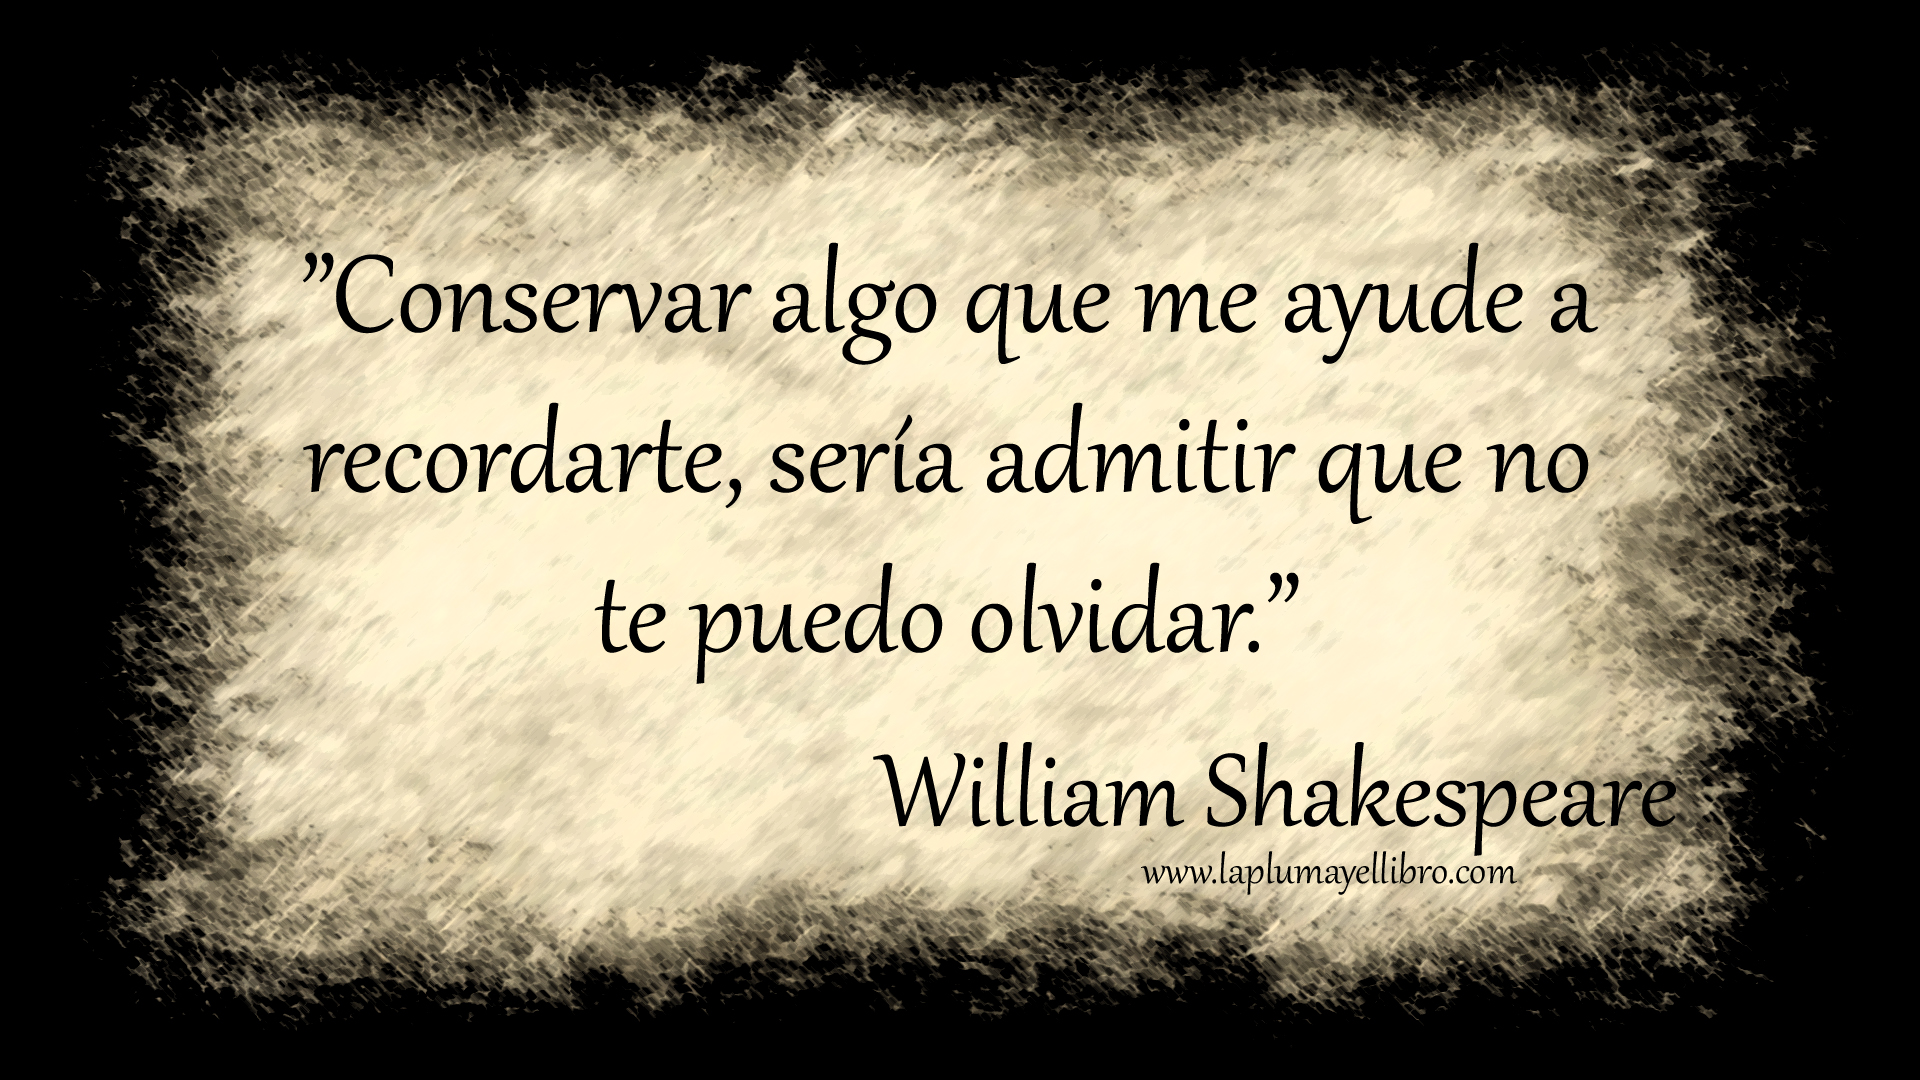 Frases Celebres William Shakespeare Frases Célebres William Shakespeare La Pluma Y El Librola Pluma